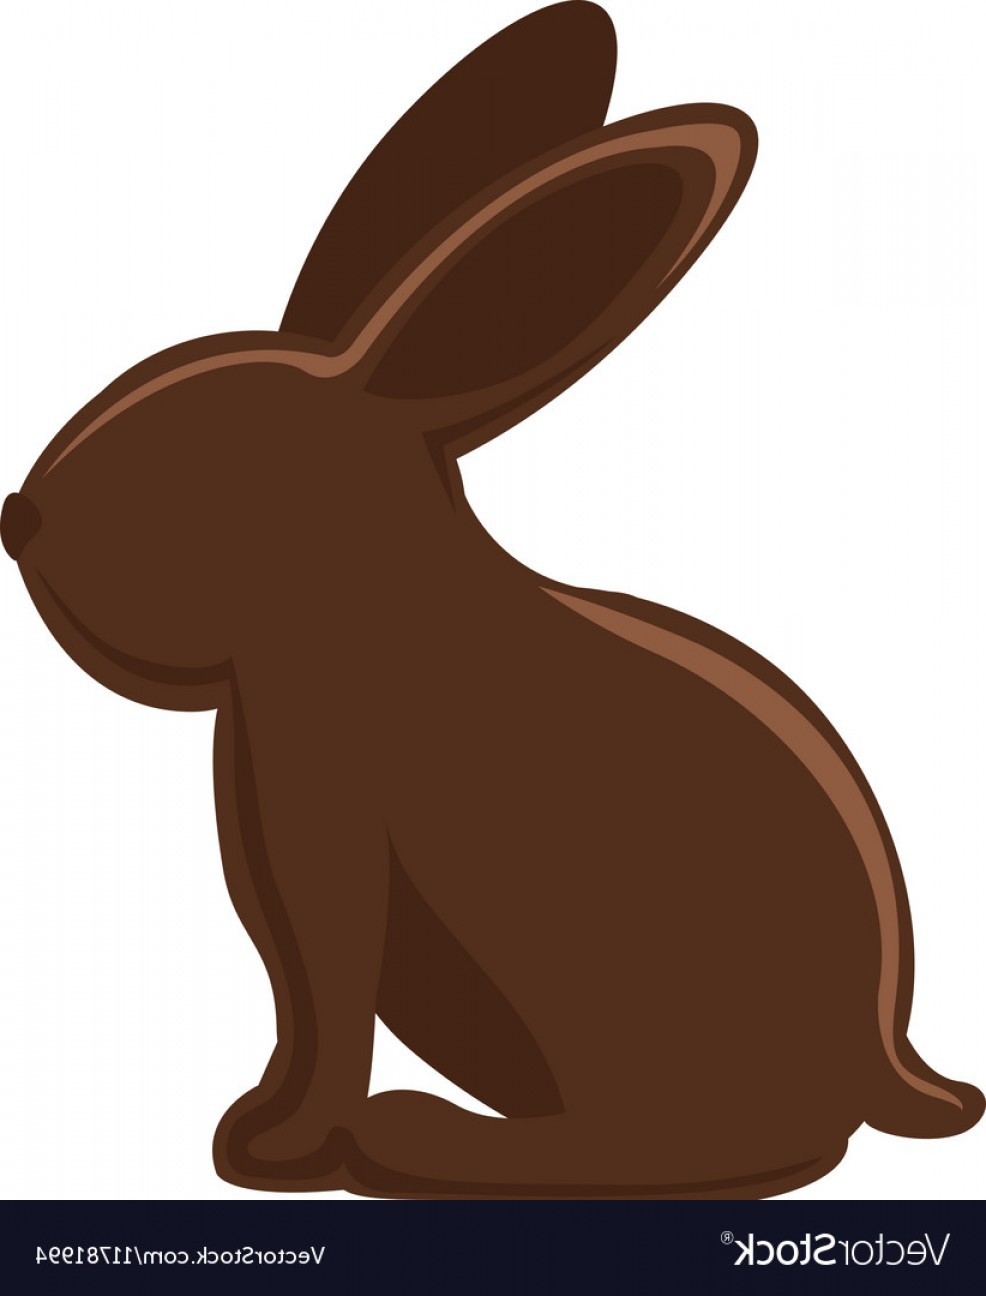 Chocolate Bunny Vector: Silhouette Of Chocolate Rabbit With Long Ears Vector